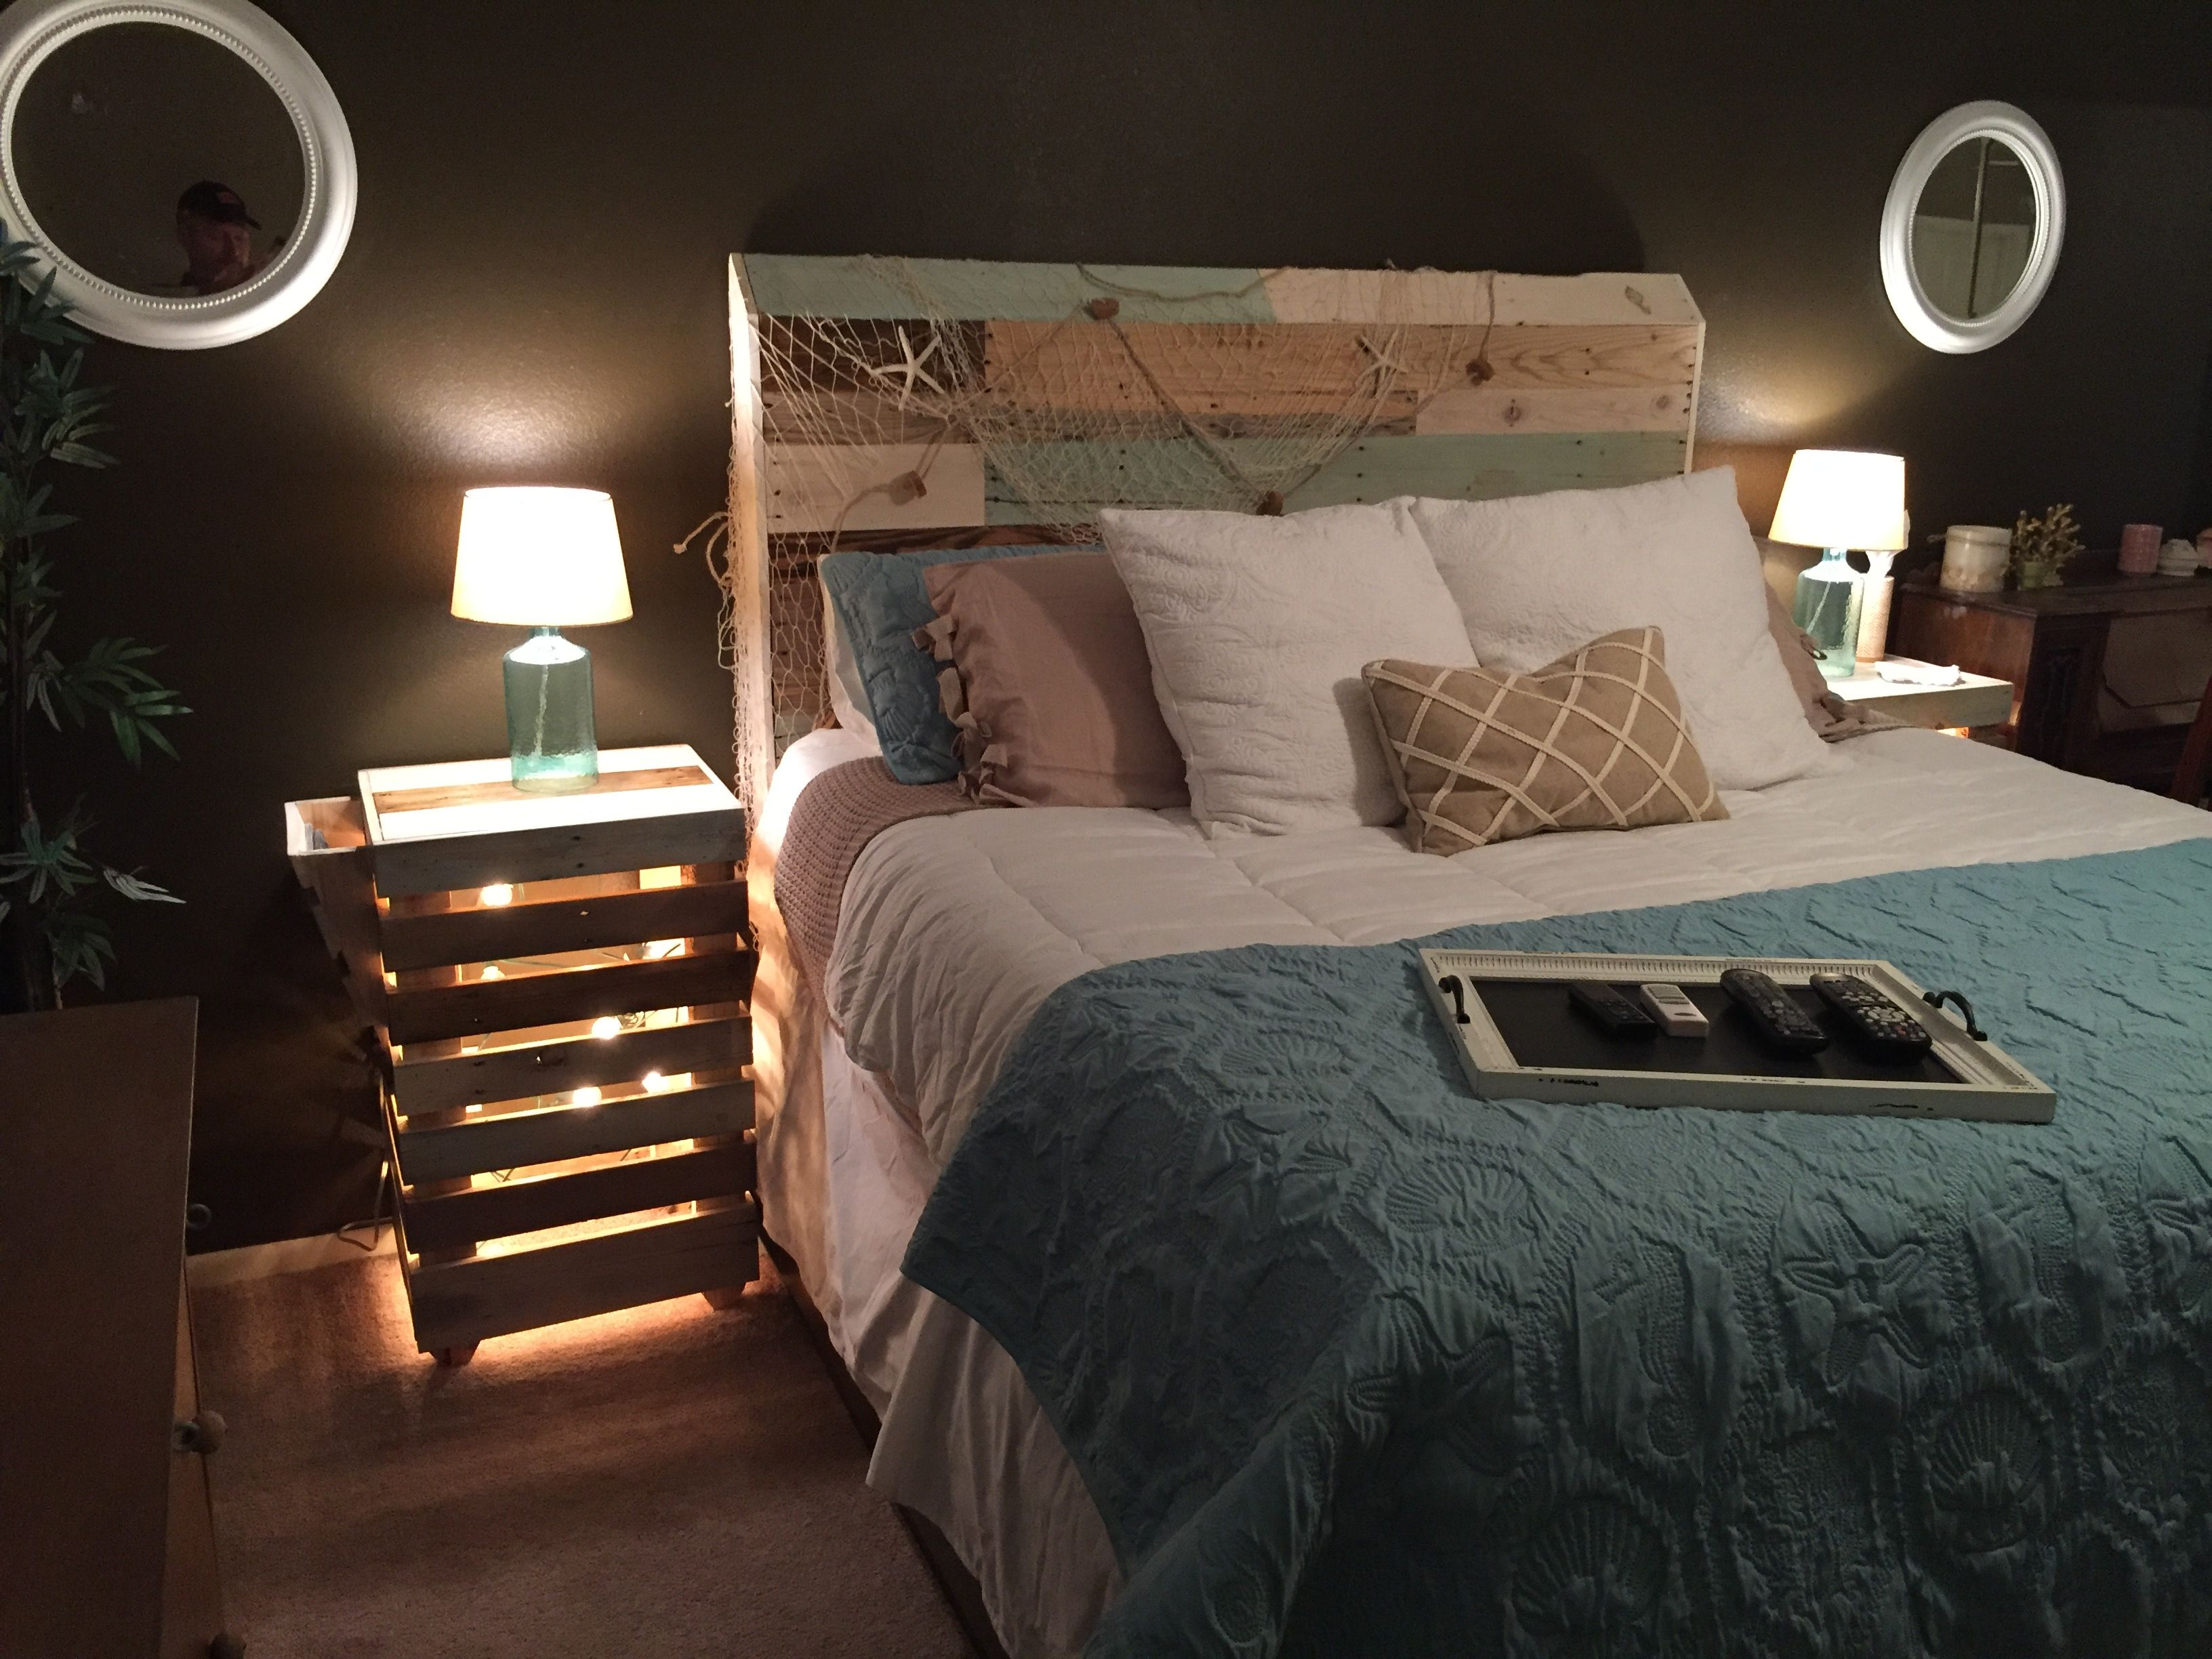 Pallet Headboard and Nightstands built for my daughter, she has a designer's eye.